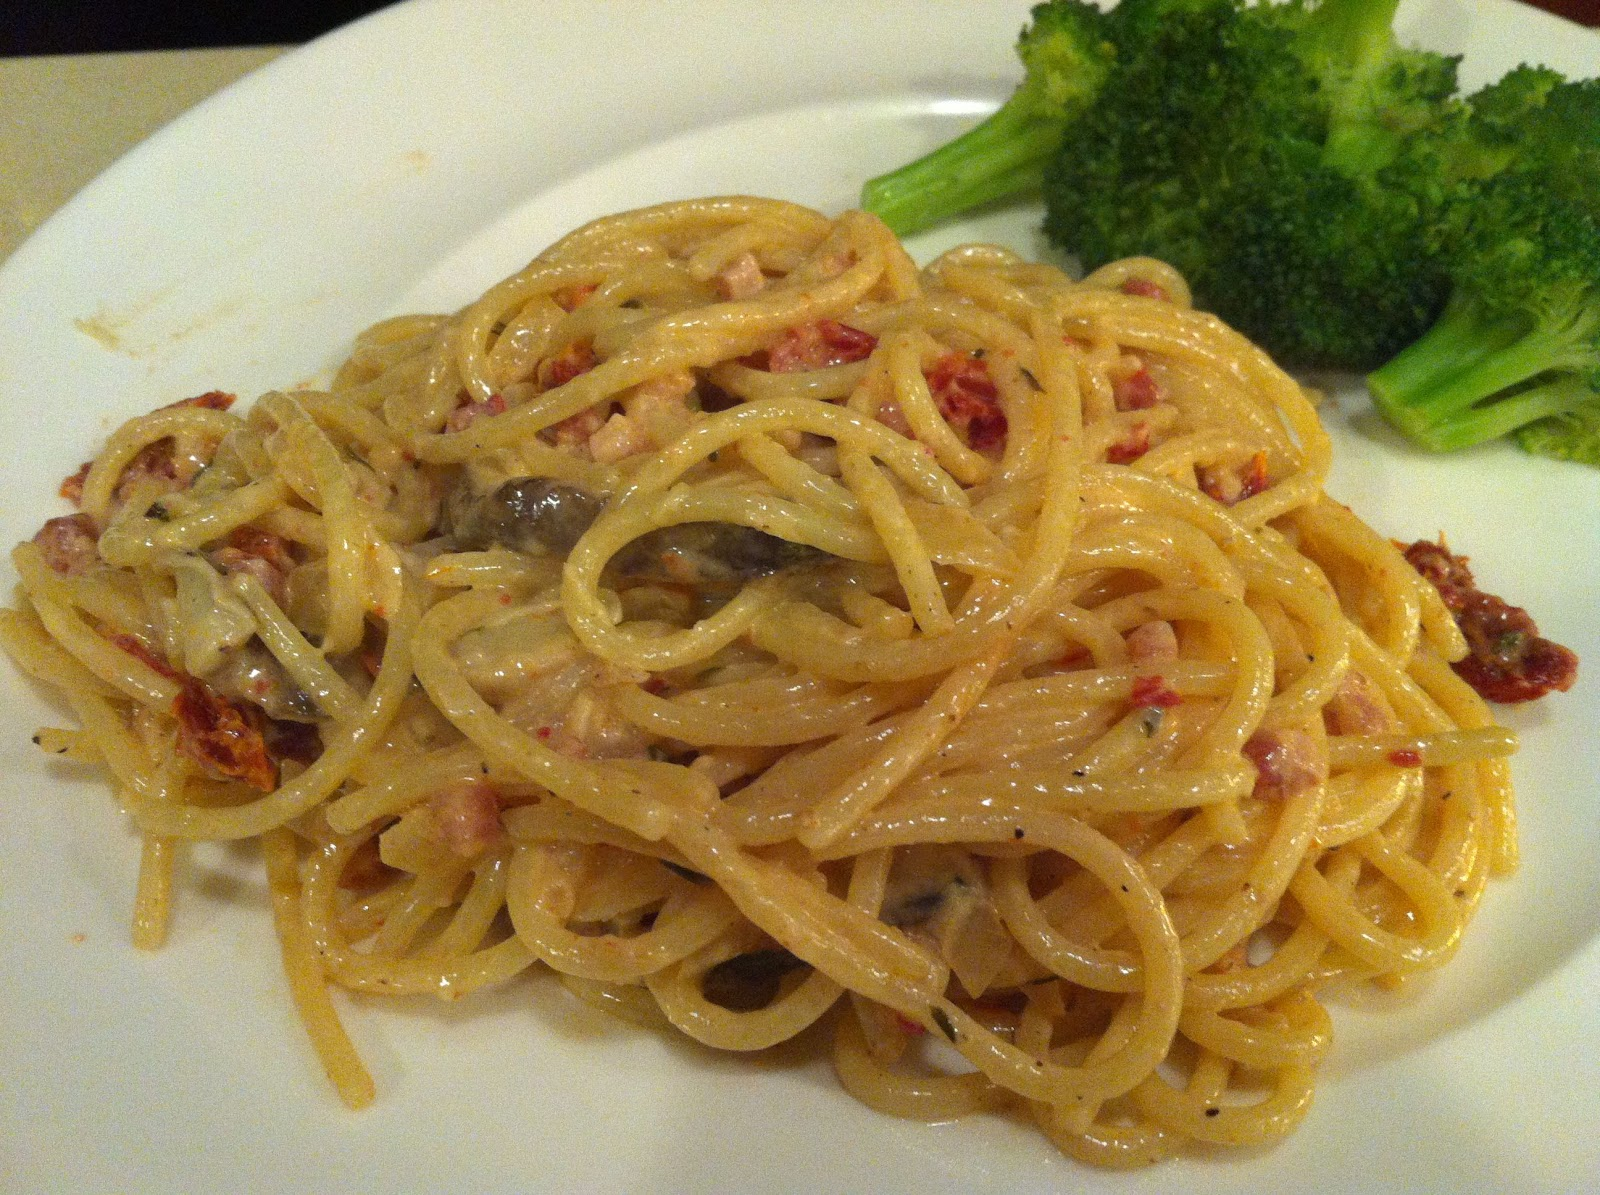 What's for Meat?: Sundried Tomato, Mushroom & Pancetta Pasta